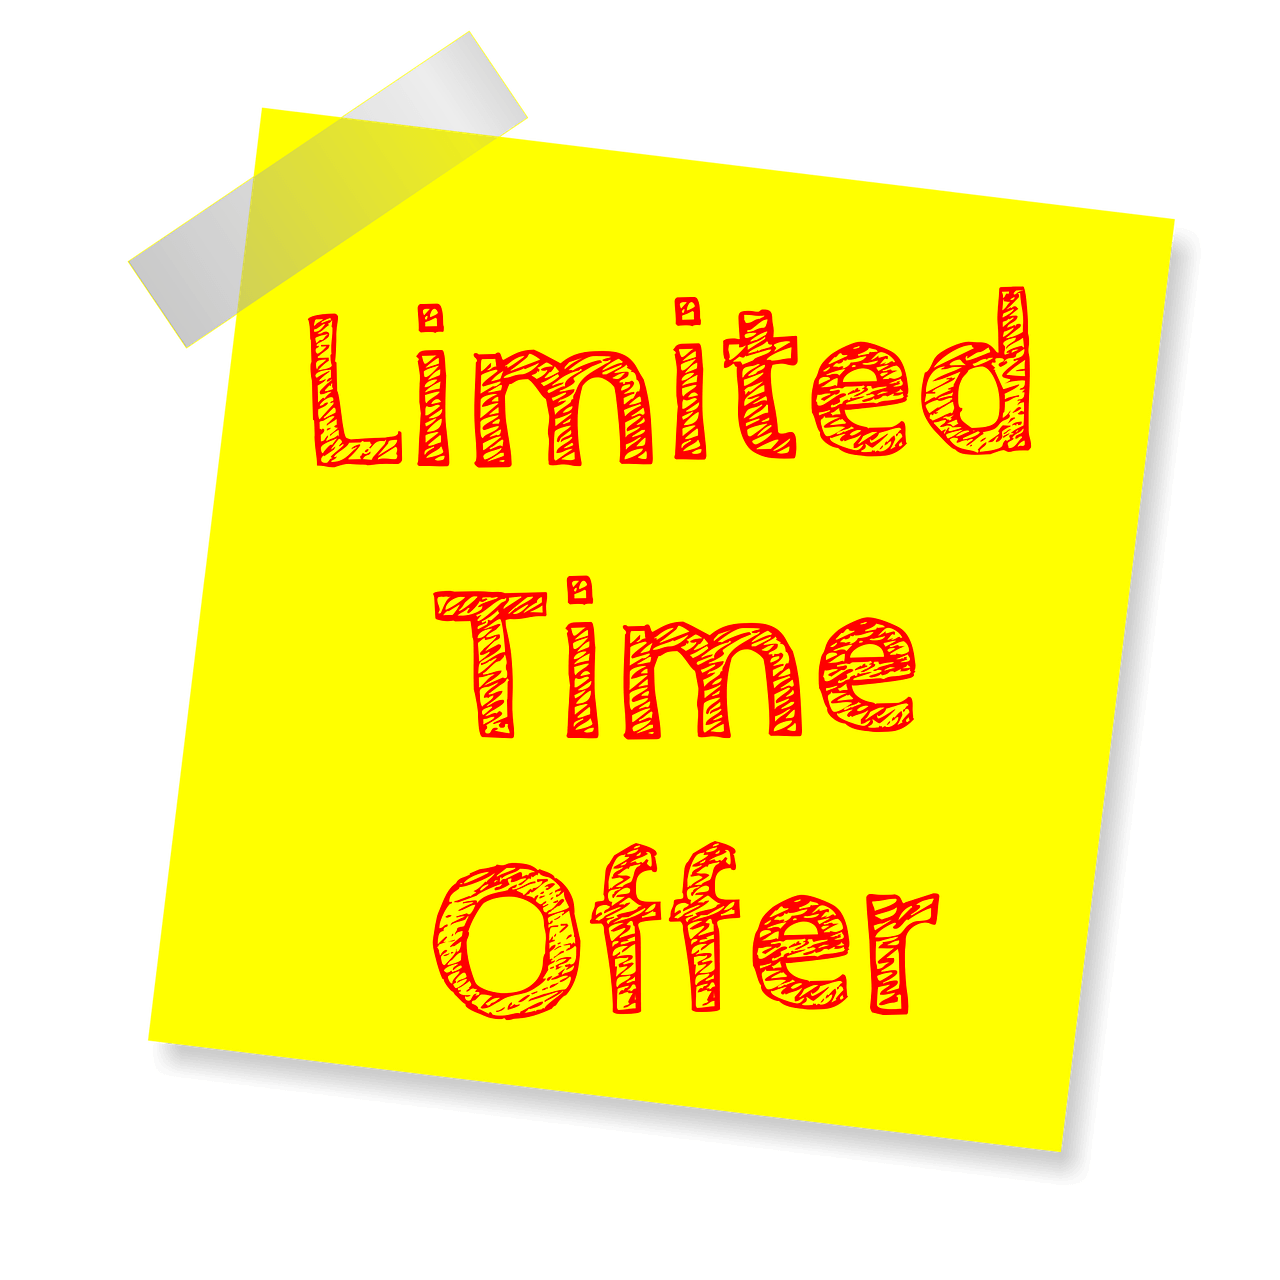 By having limited time offers, customers will buy more